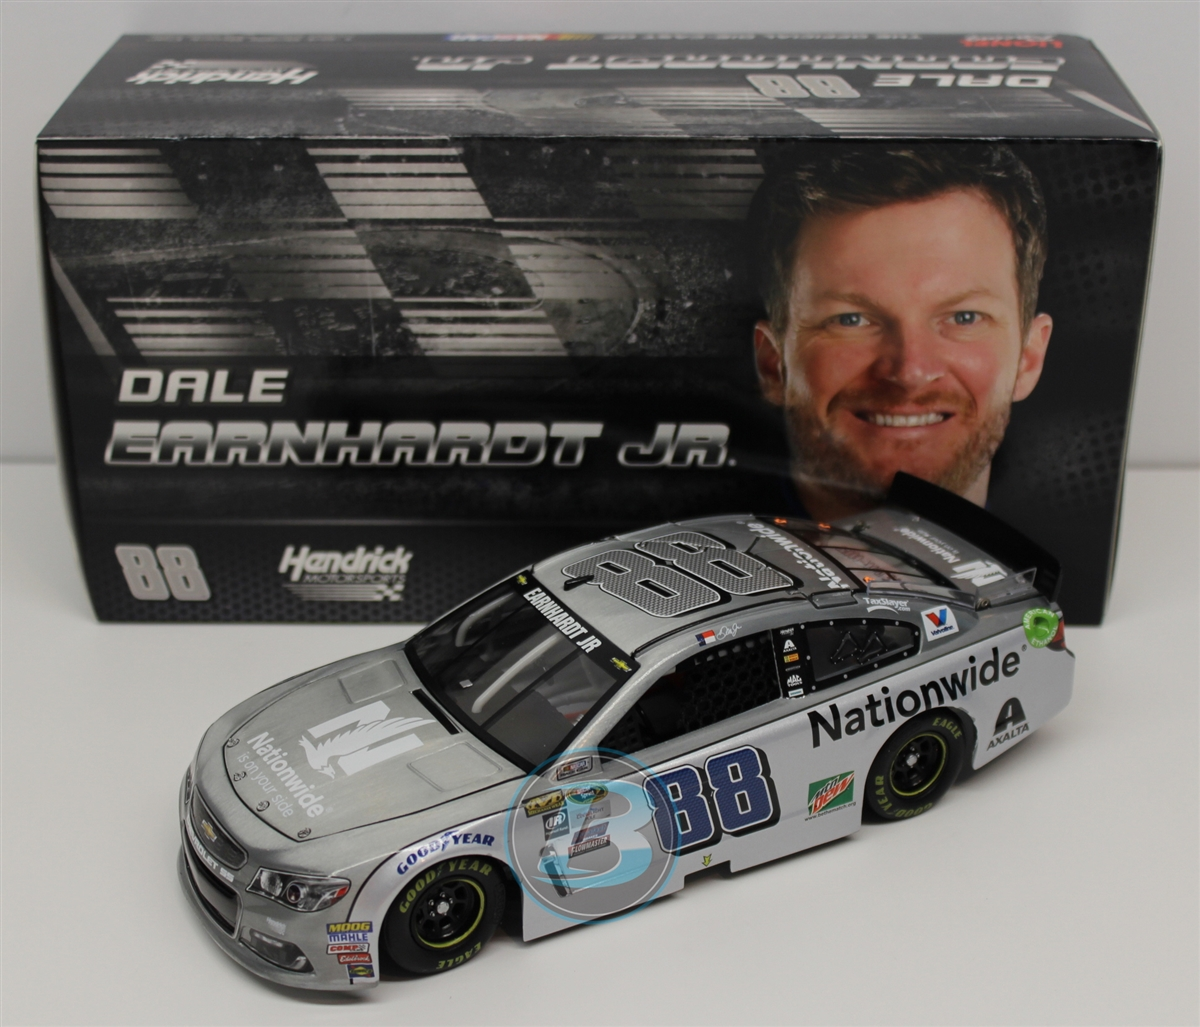 2016 Dale Earnhardt Jr HOTO Raw Nationwide Insurance